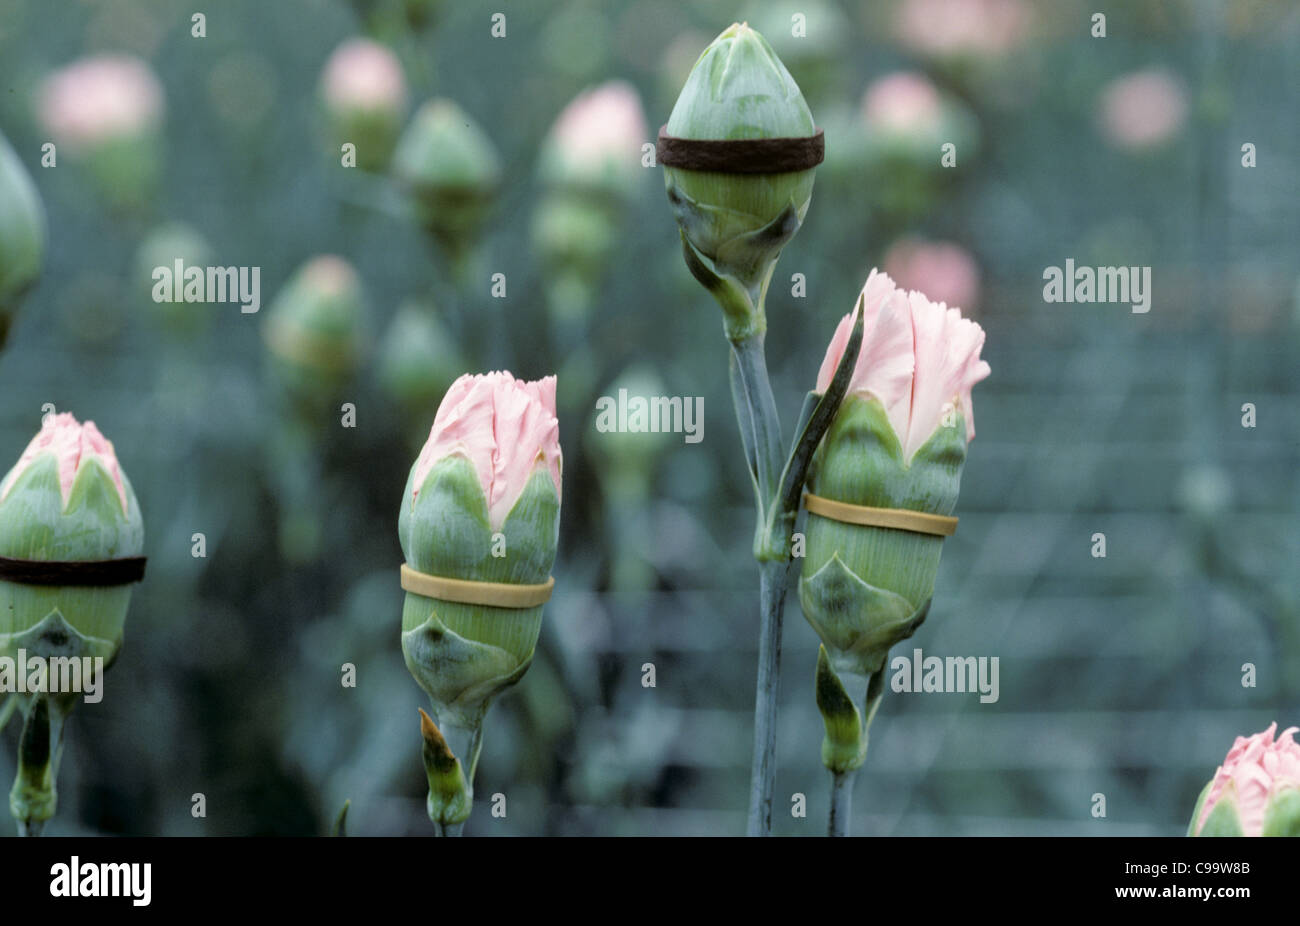 Carnation (Dianthus sp.) flower buds bound by elastic bands to prevent opening, Colombia - Stock Image